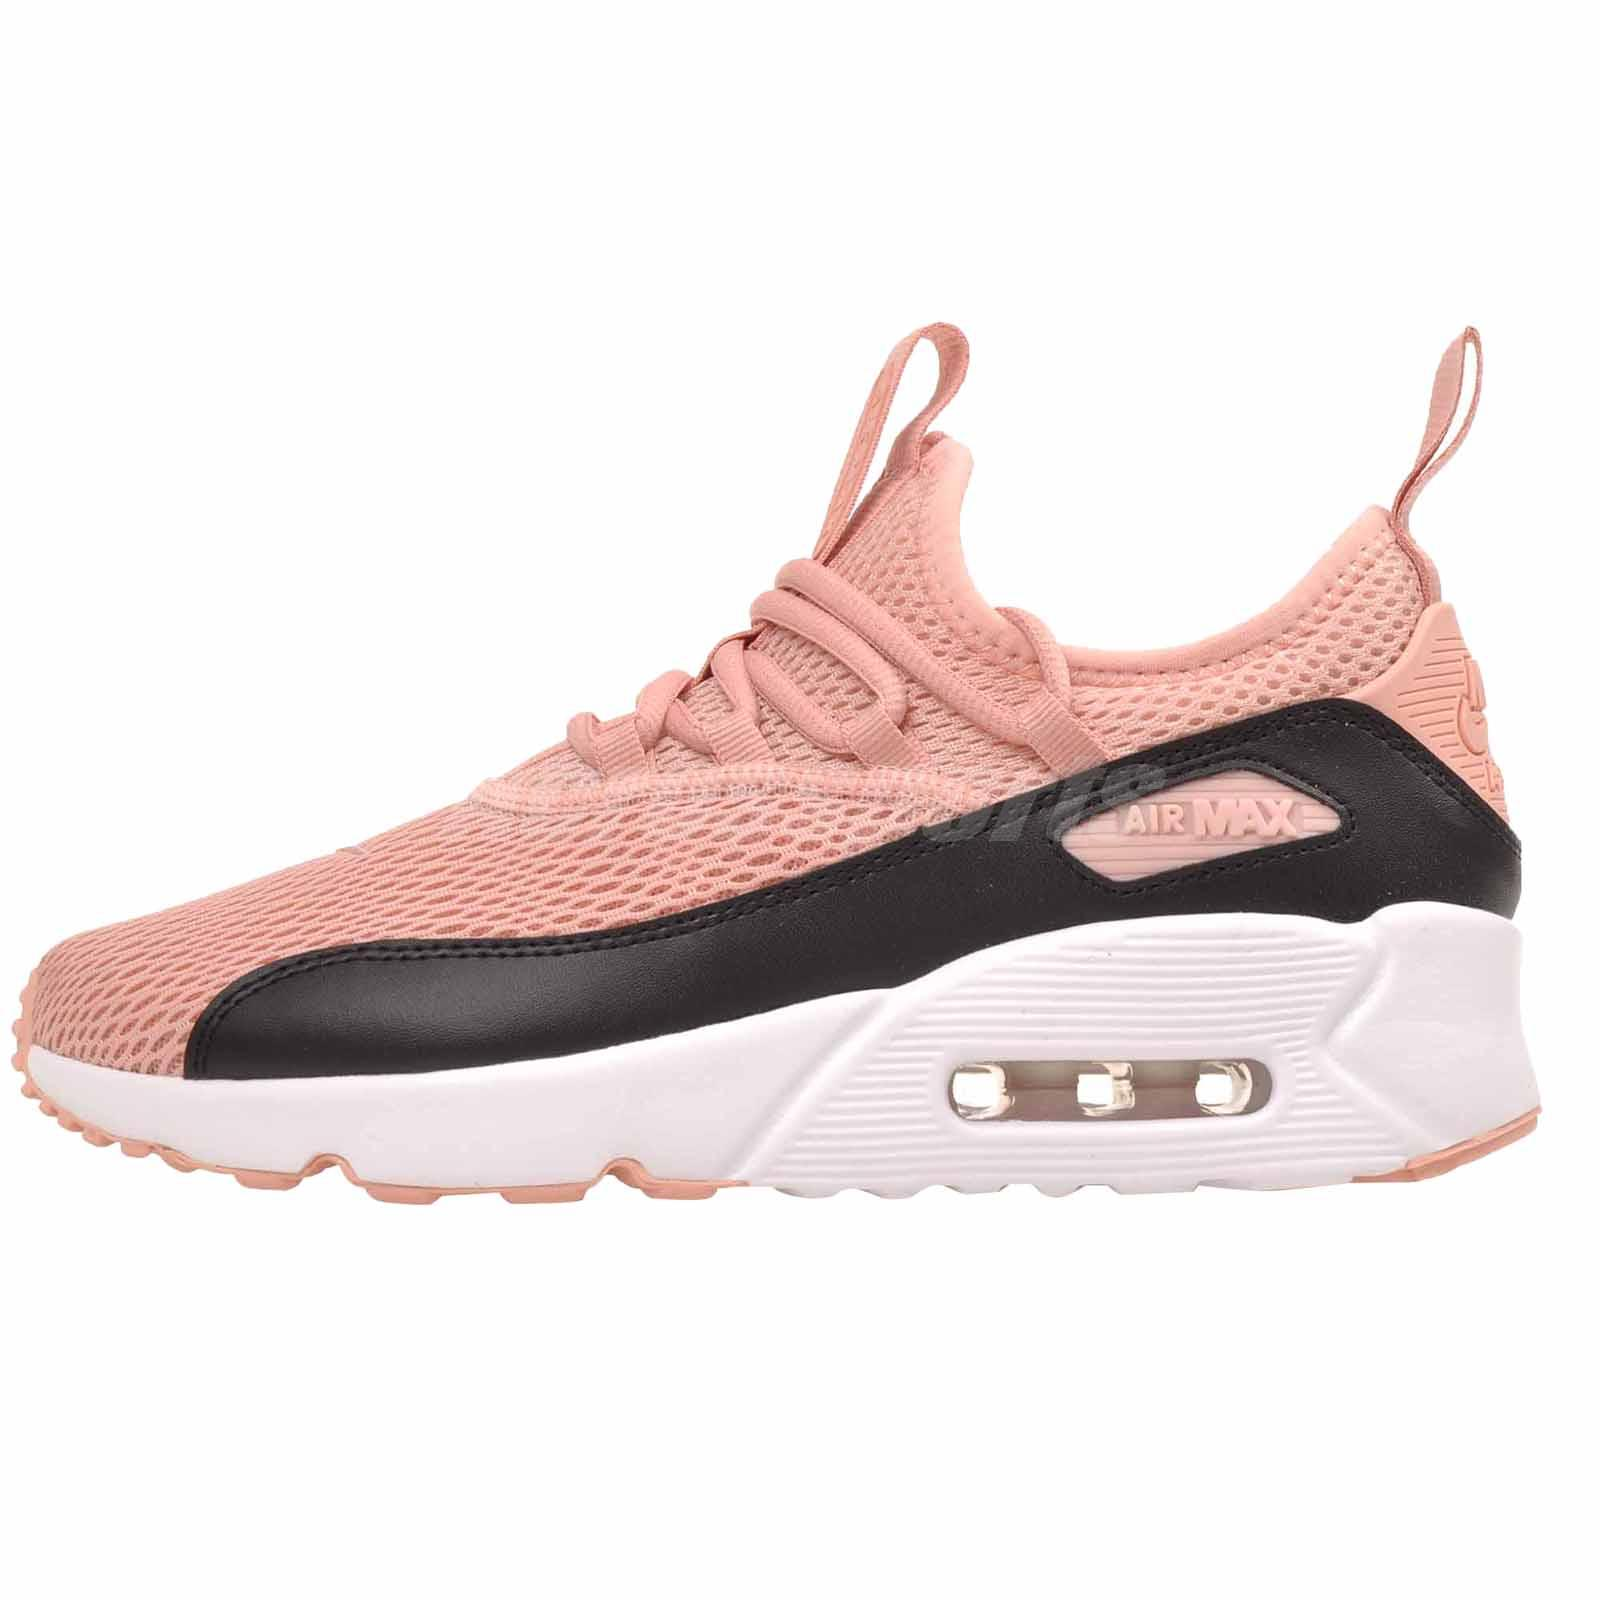 brand new 25f53 dba7a Details about Nike Air Max 90 EZ GS Running Kids Youth Womens Shoes  Stardust Pink AH5212-600